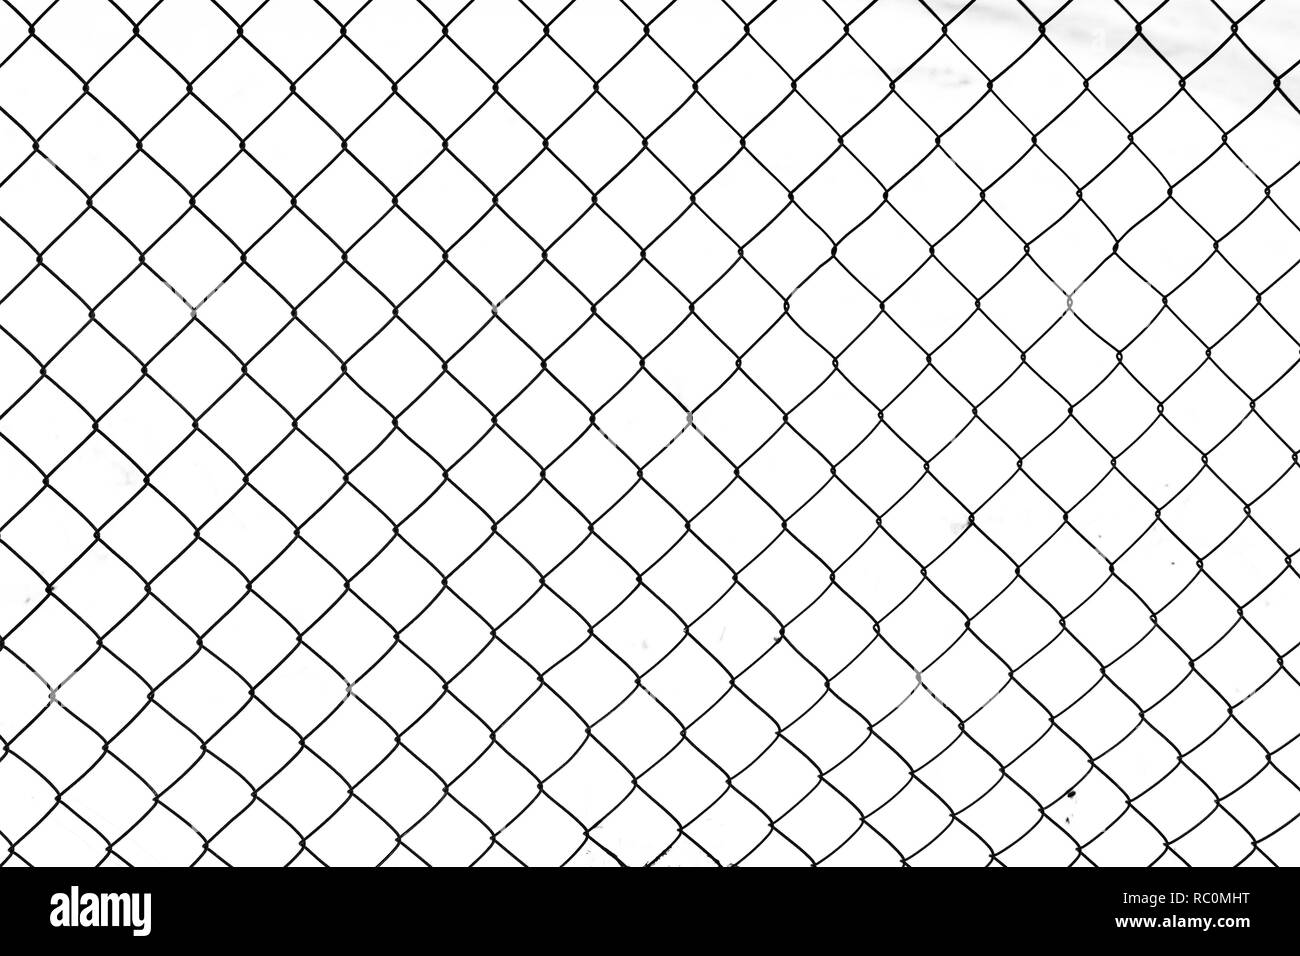 Wire fence in the snow. Black and white abstract backgraund. - Stock Image